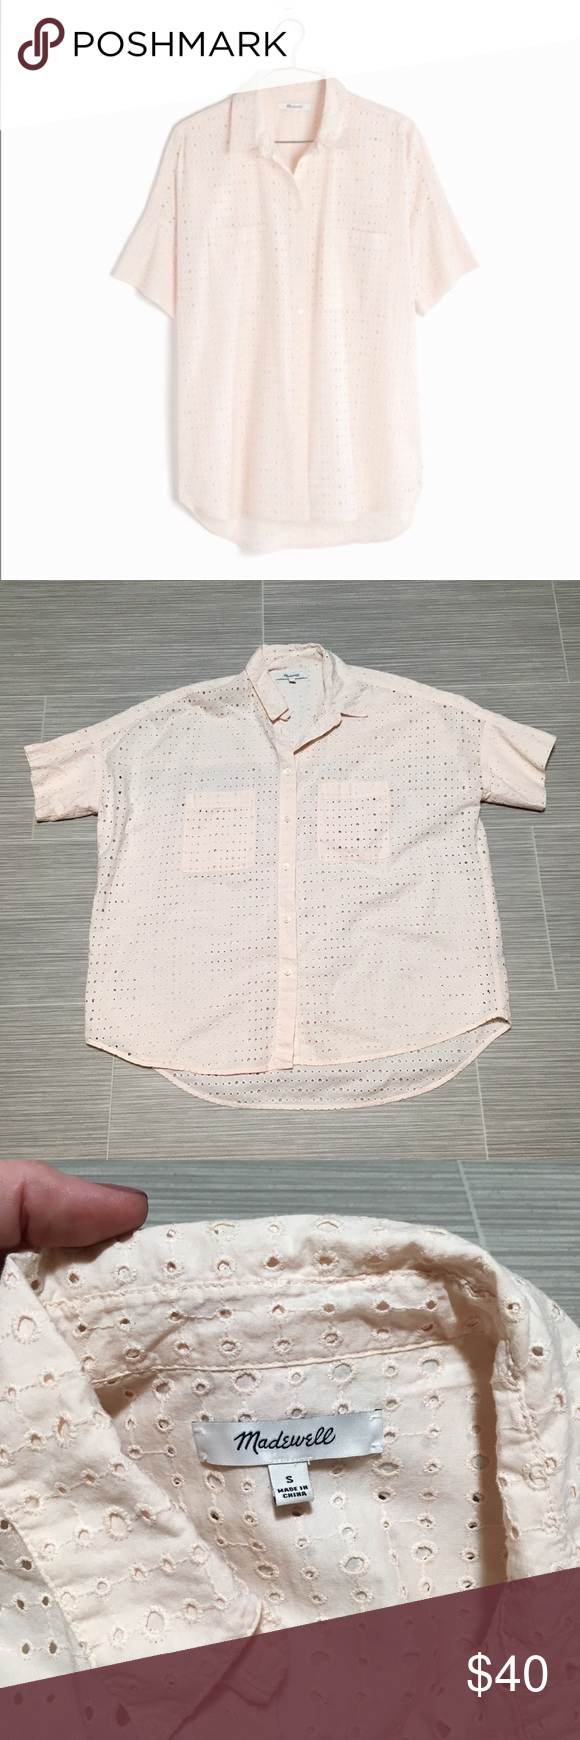 29b0c4d8 This button-down shirt features light pink / blush eyelet lace, short  sleeves, a slightly boxy shape, and a slightly oversized fit.